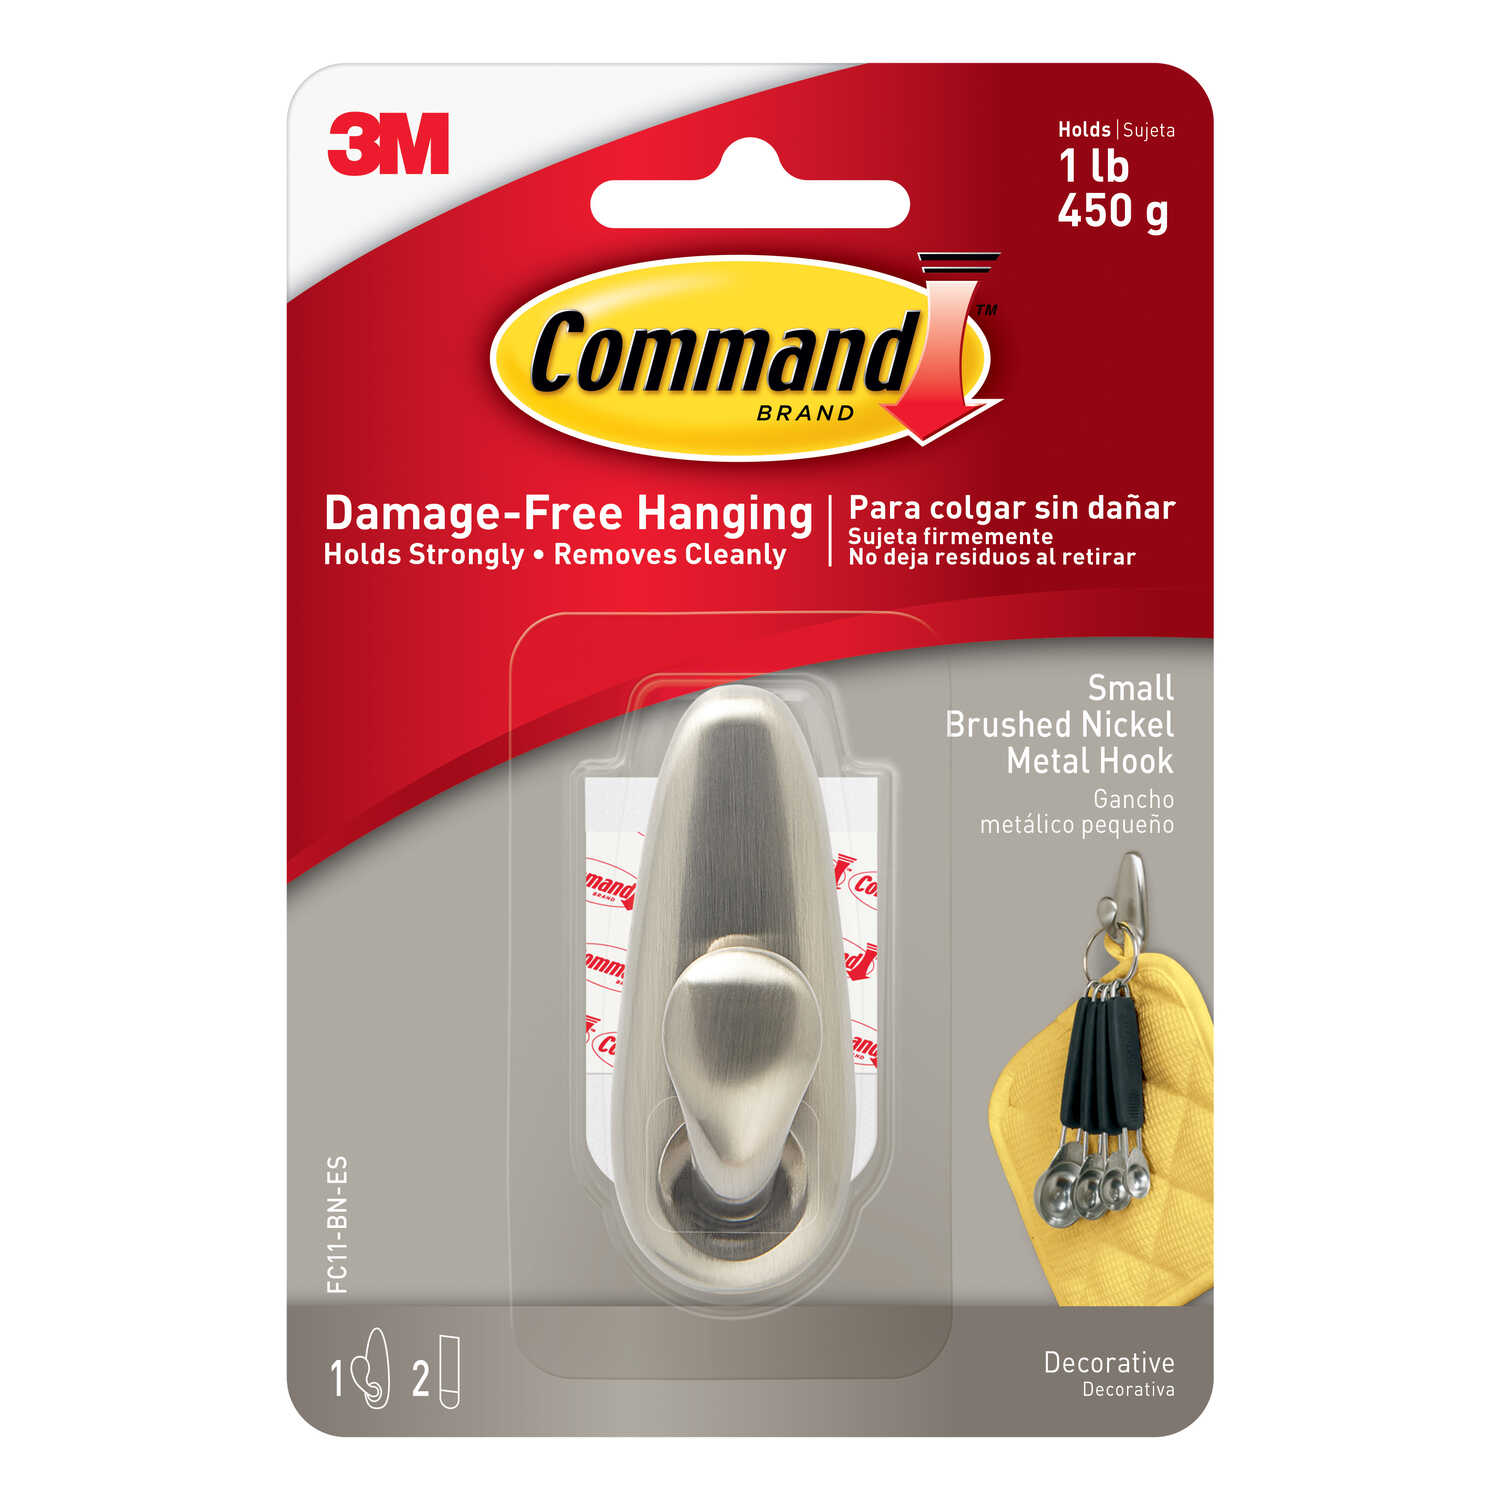 3M  Command  2-5/8 in. L Brushed Nickel  Metal  Small  Forever Classic  Coat/Hat Hook  1 lb. capacit